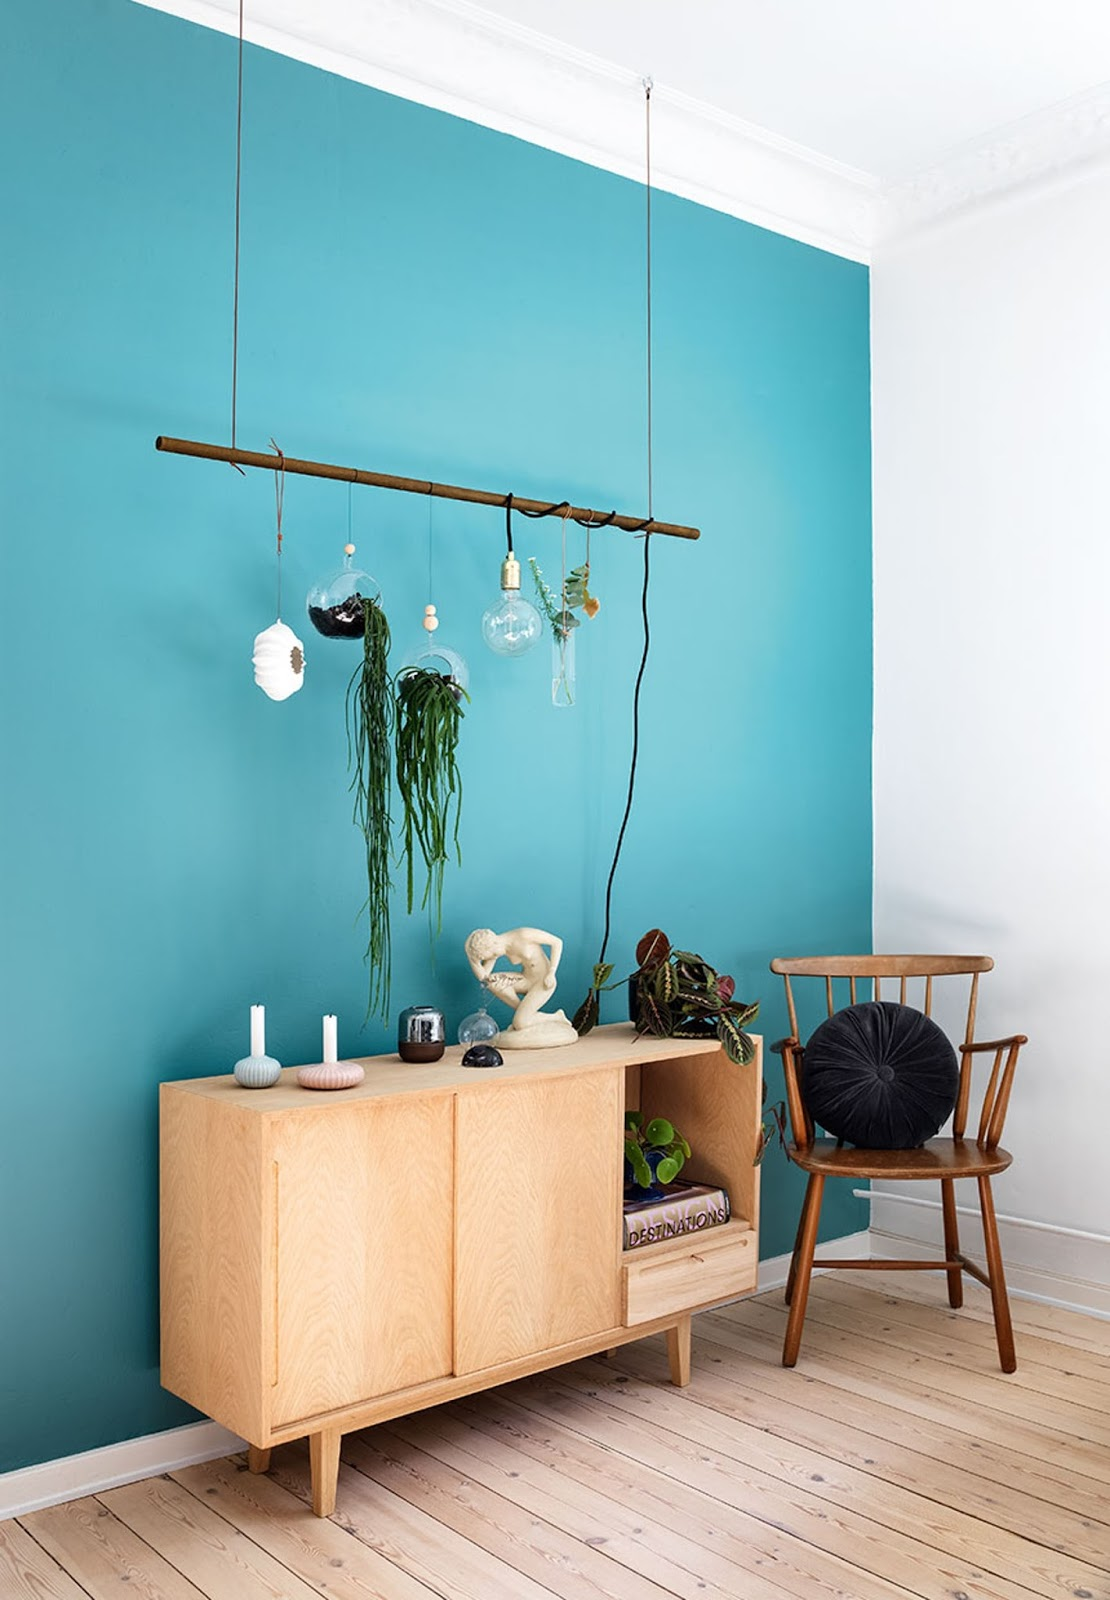 teal painted wall, diy ideas, mid century modern sideboard, scandinavian apartment